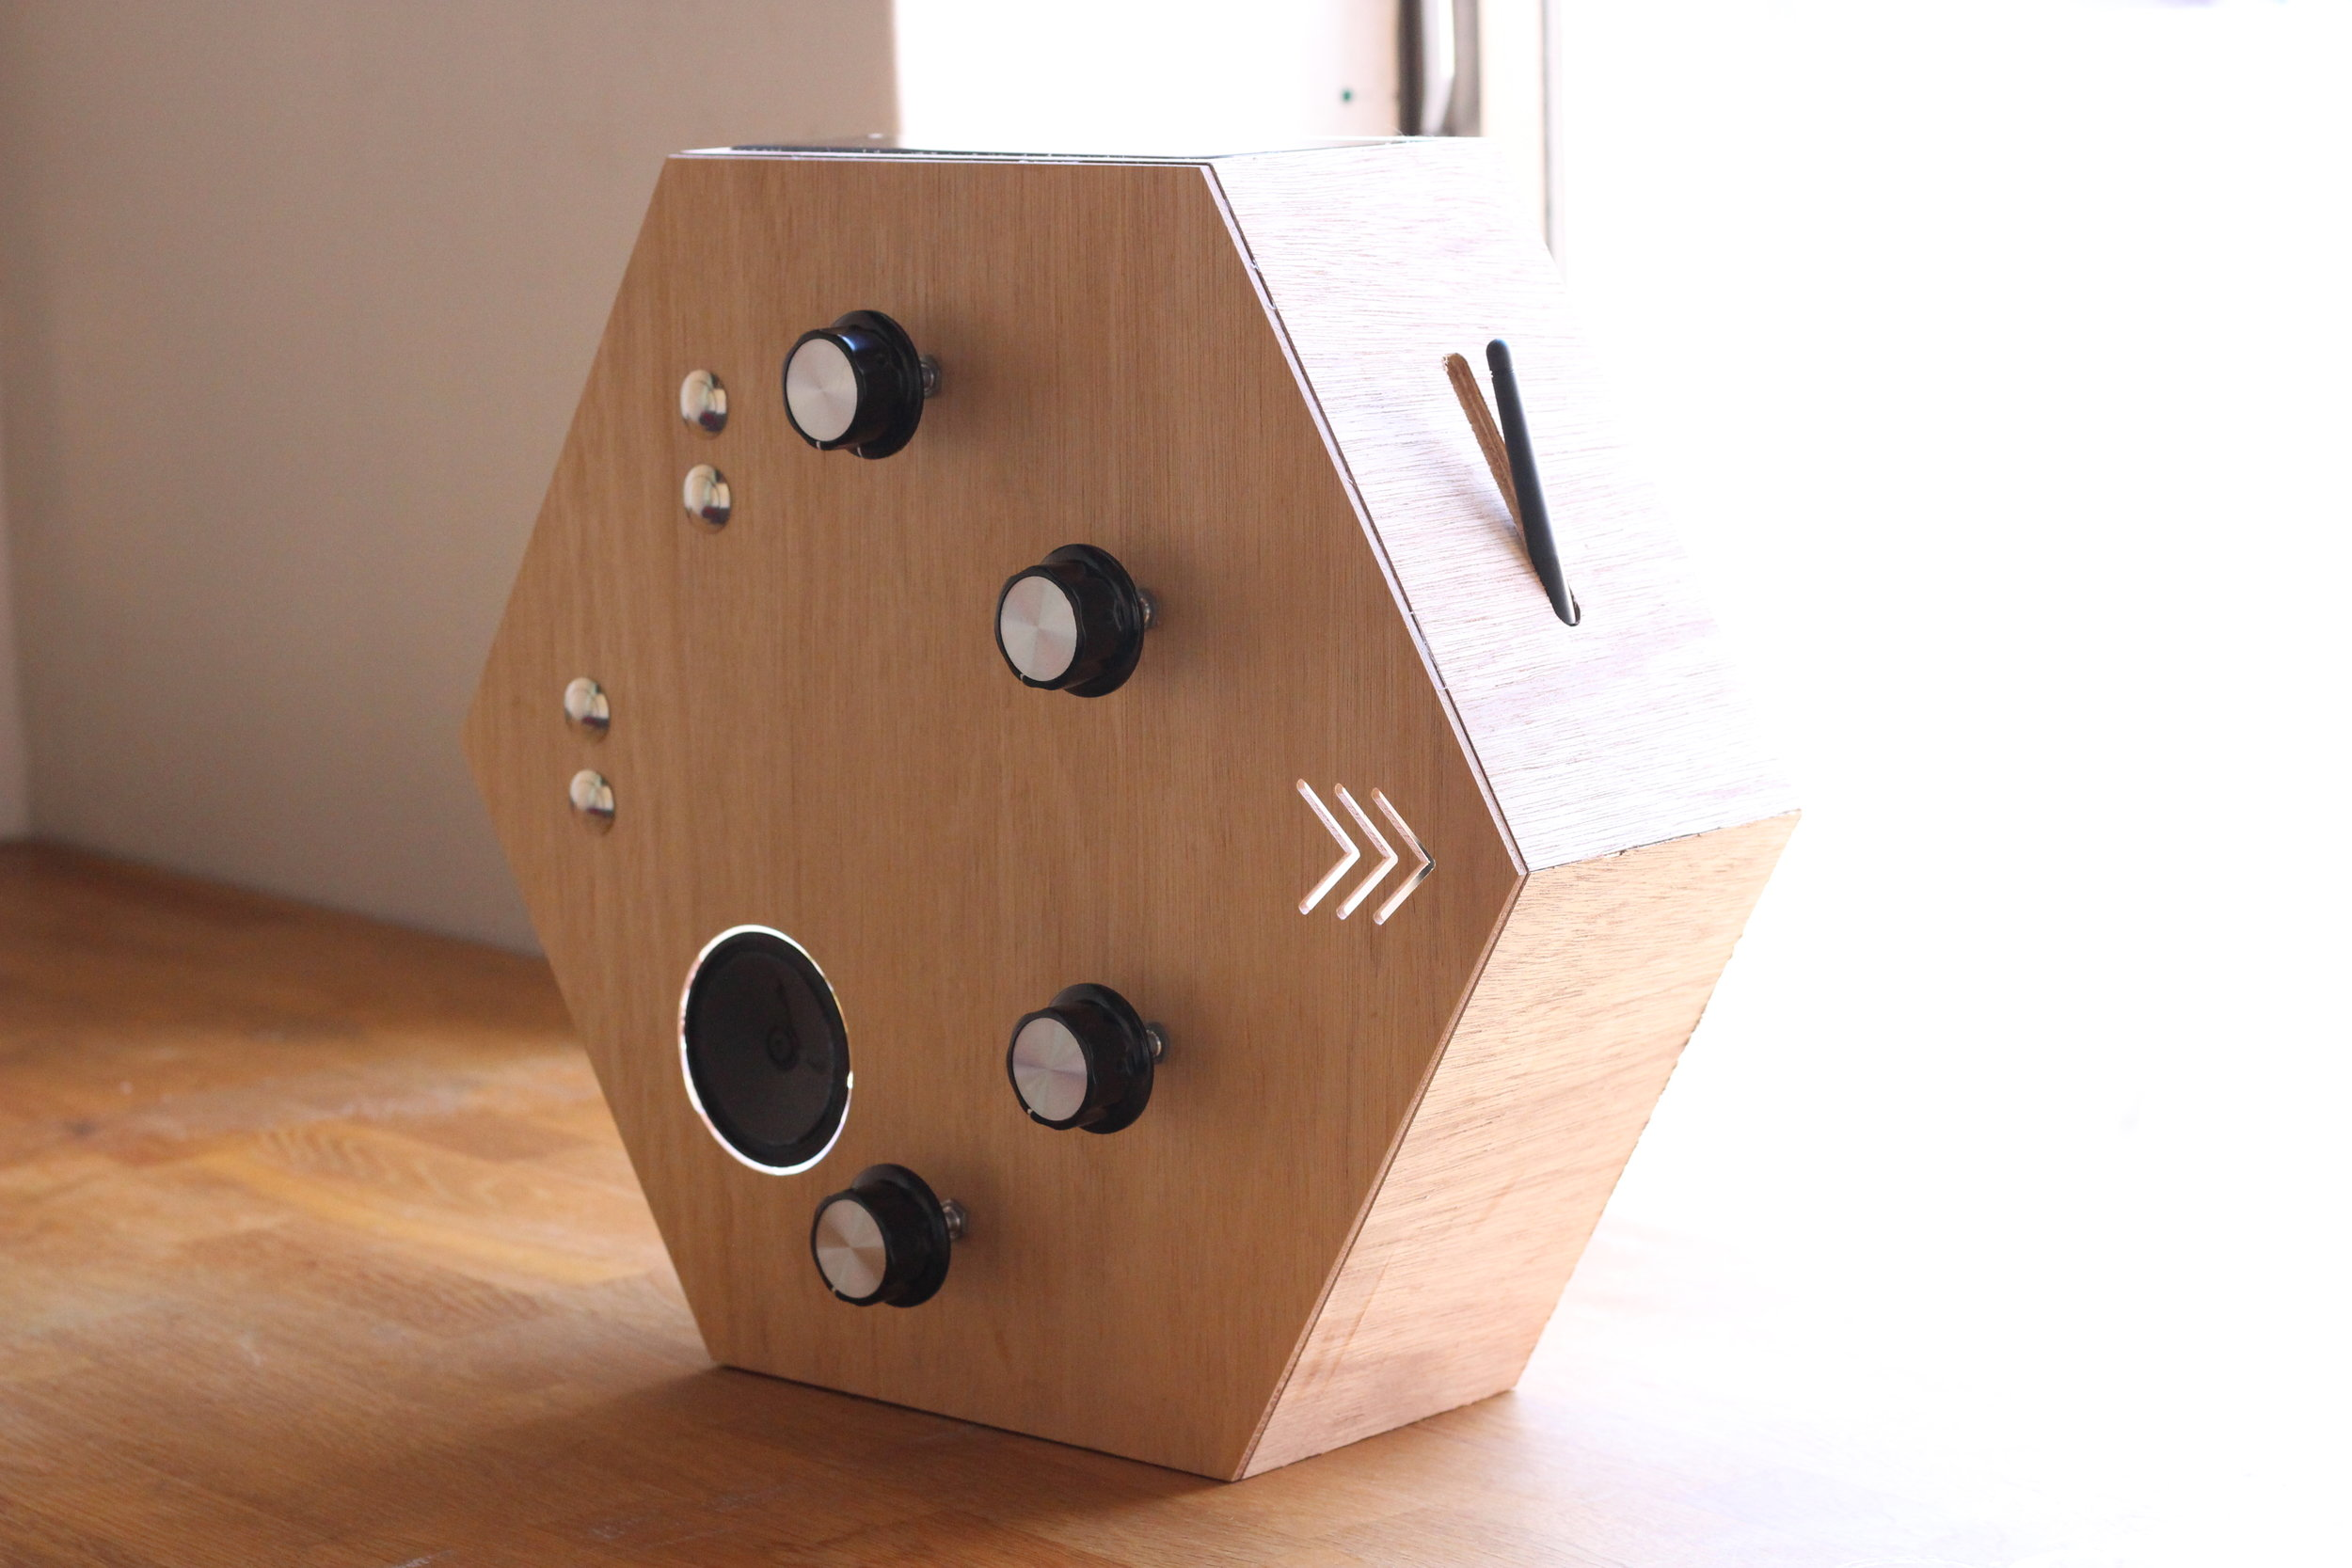 a collection of three interactive objects (like the one pictured to the right) with dials and buttons. each object can speak to one another from up to 10km away. made from marine plywood and vandal-proof components. pass it on was commissioned by the think+do tank foundation in an effort to help people with no common language connect anonymously with music, an international language.